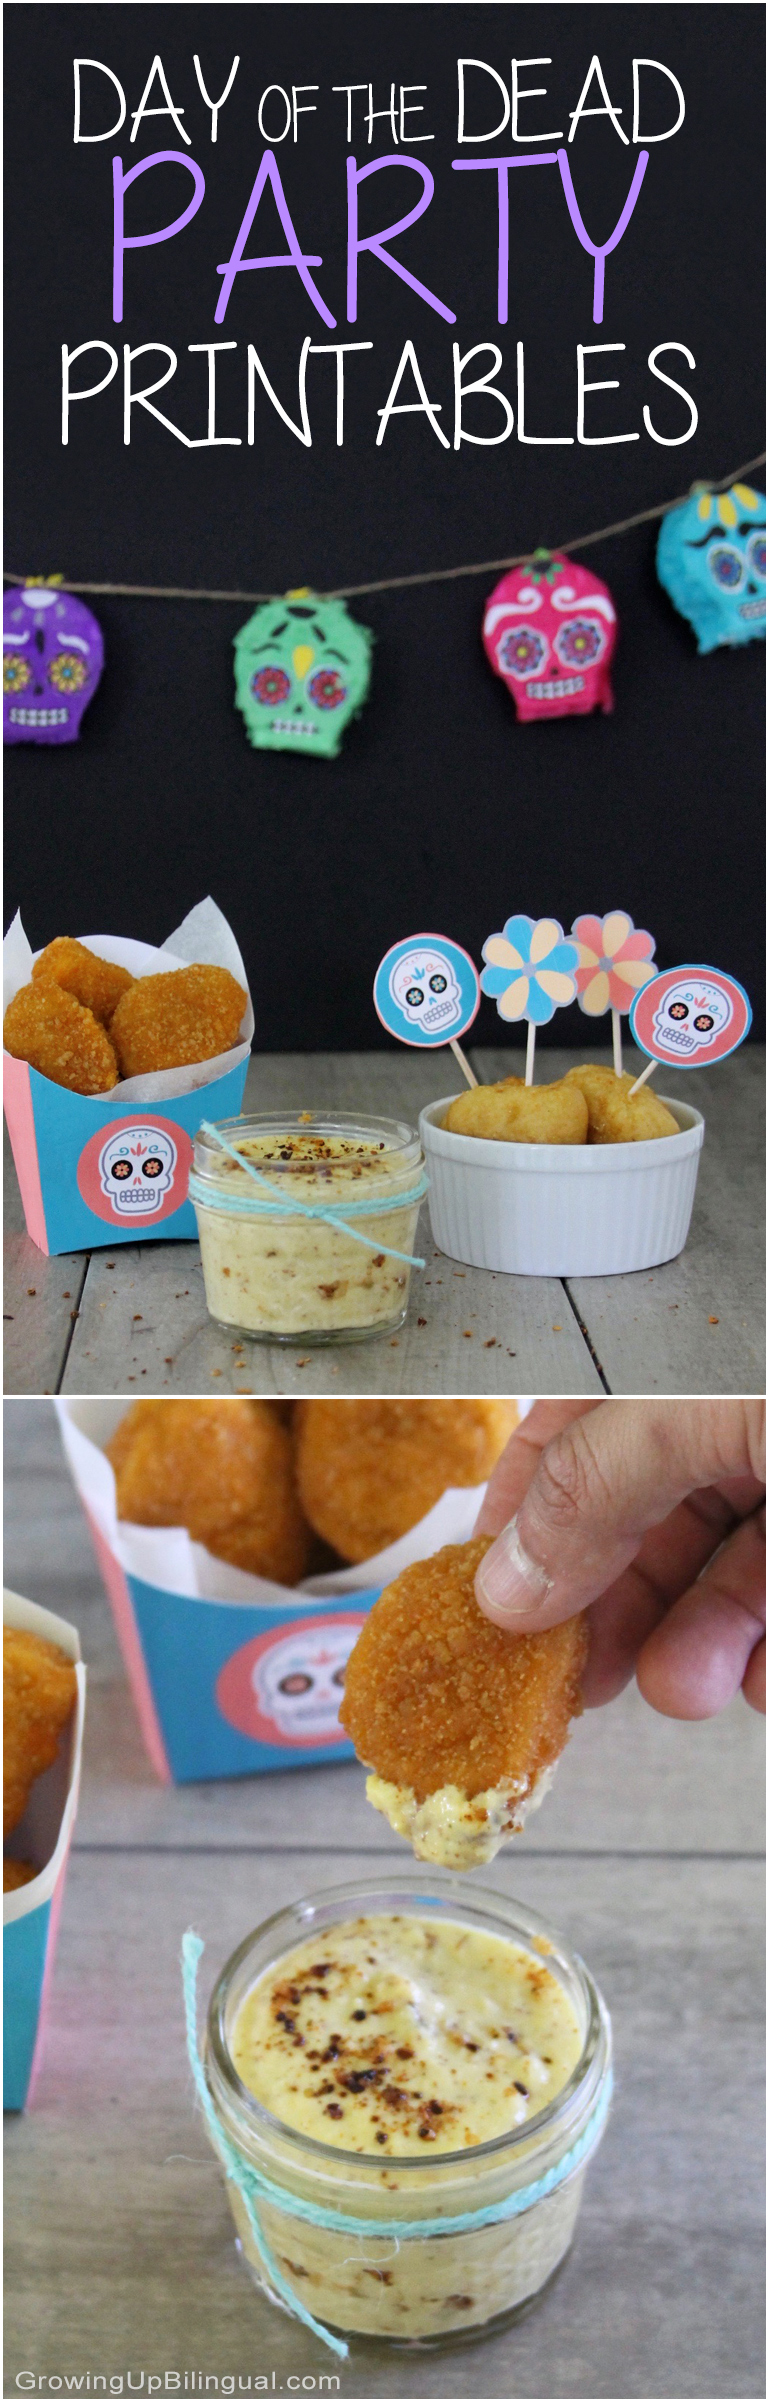 Party day of the dead pinterest